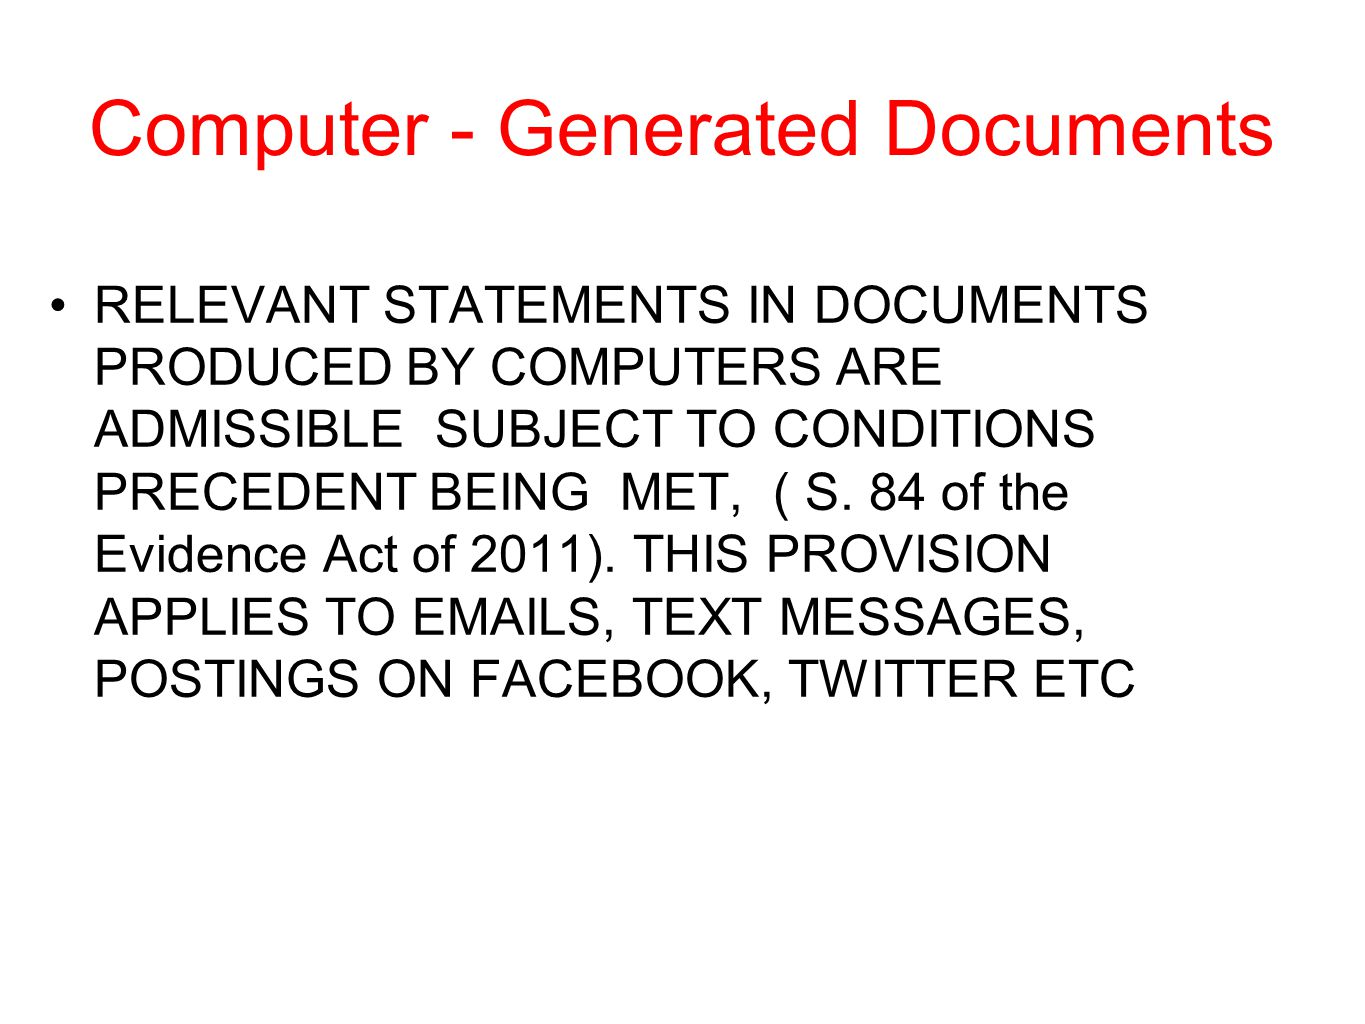 Computer - Generated Documents RELEVANT STATEMENTS IN DOCUMENTS PRODUCED BY COMPUTERS ARE ADMISSIBLE SUBJECT TO CONDITIONS PRECEDENT BEING MET, ( S. 8